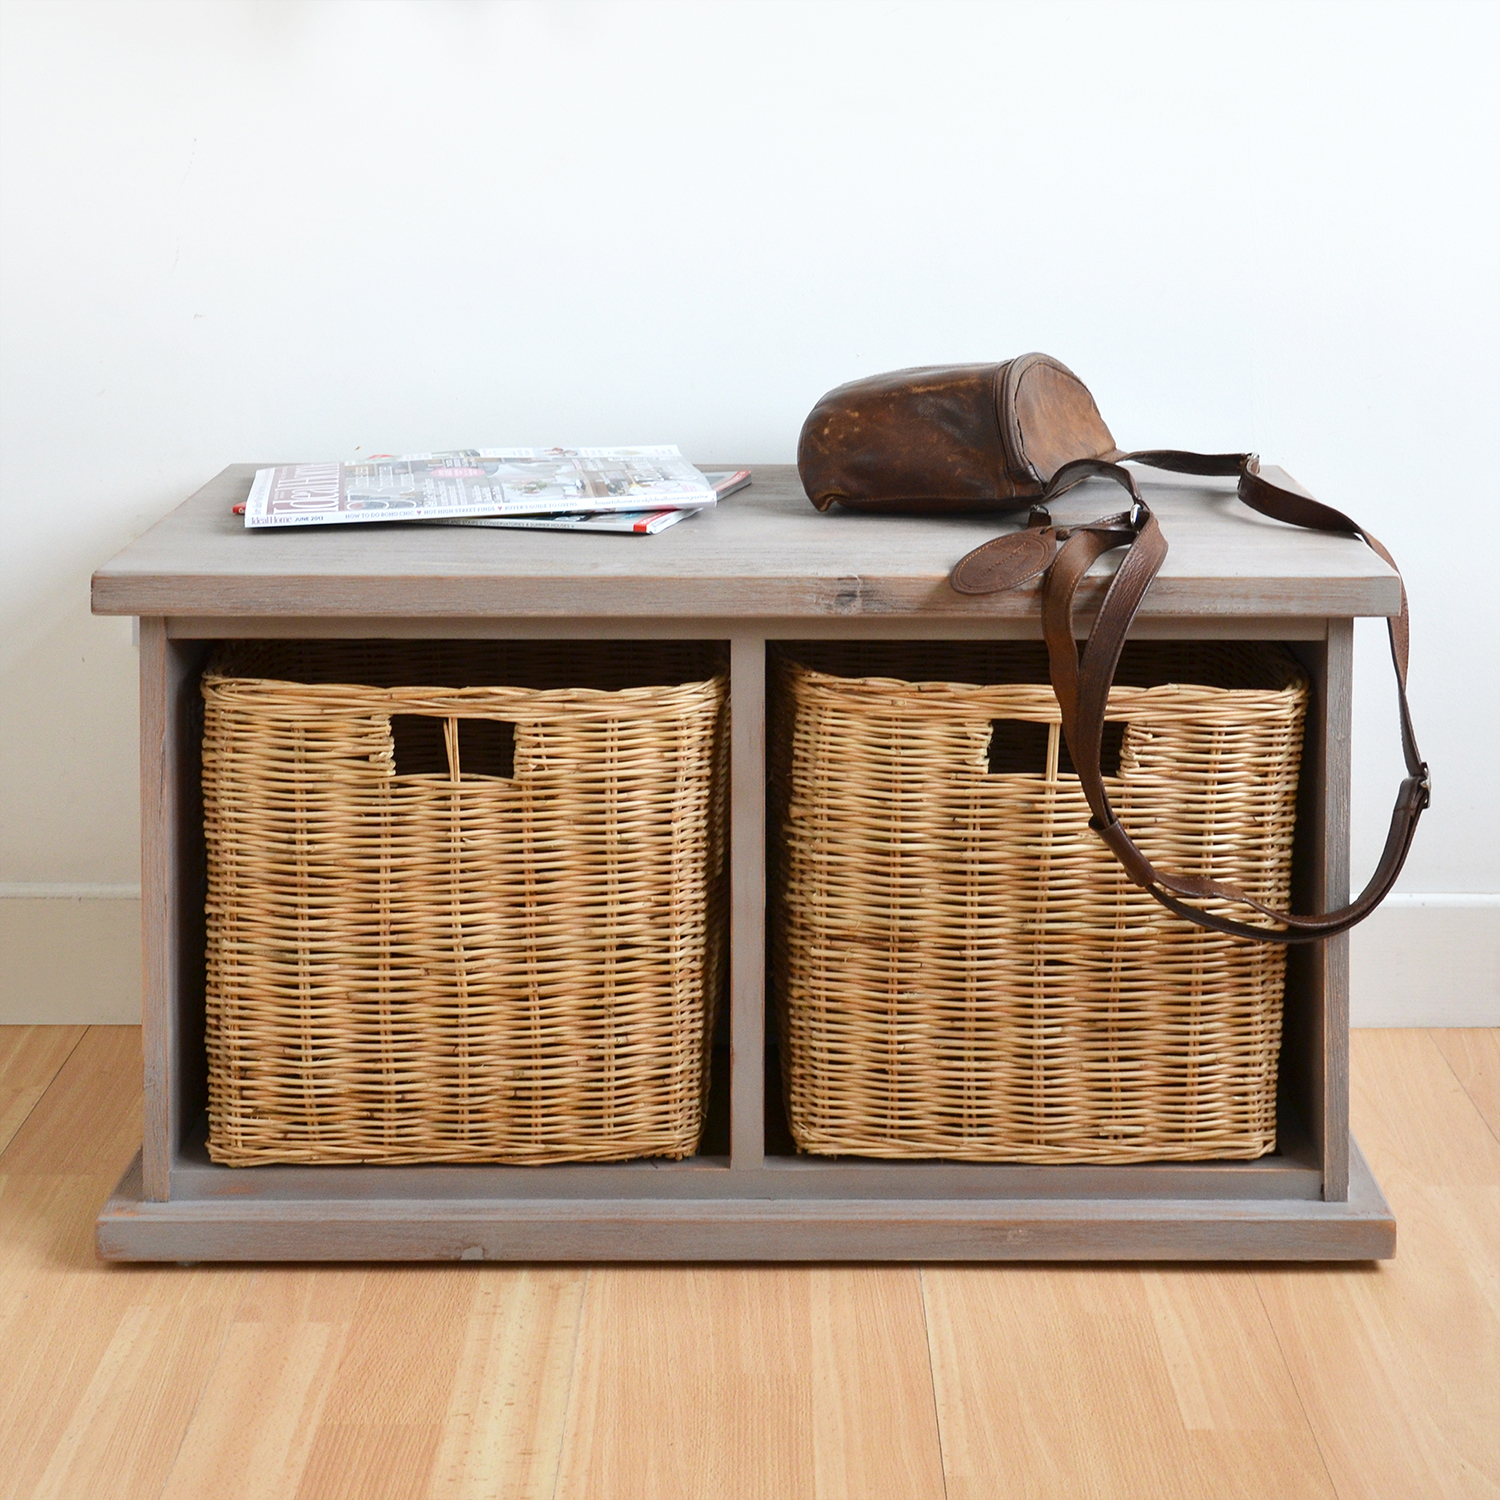 Acacia Storage Bench With Wicker Baskets Hallway Bench With 2 Storage Baskets Ebay